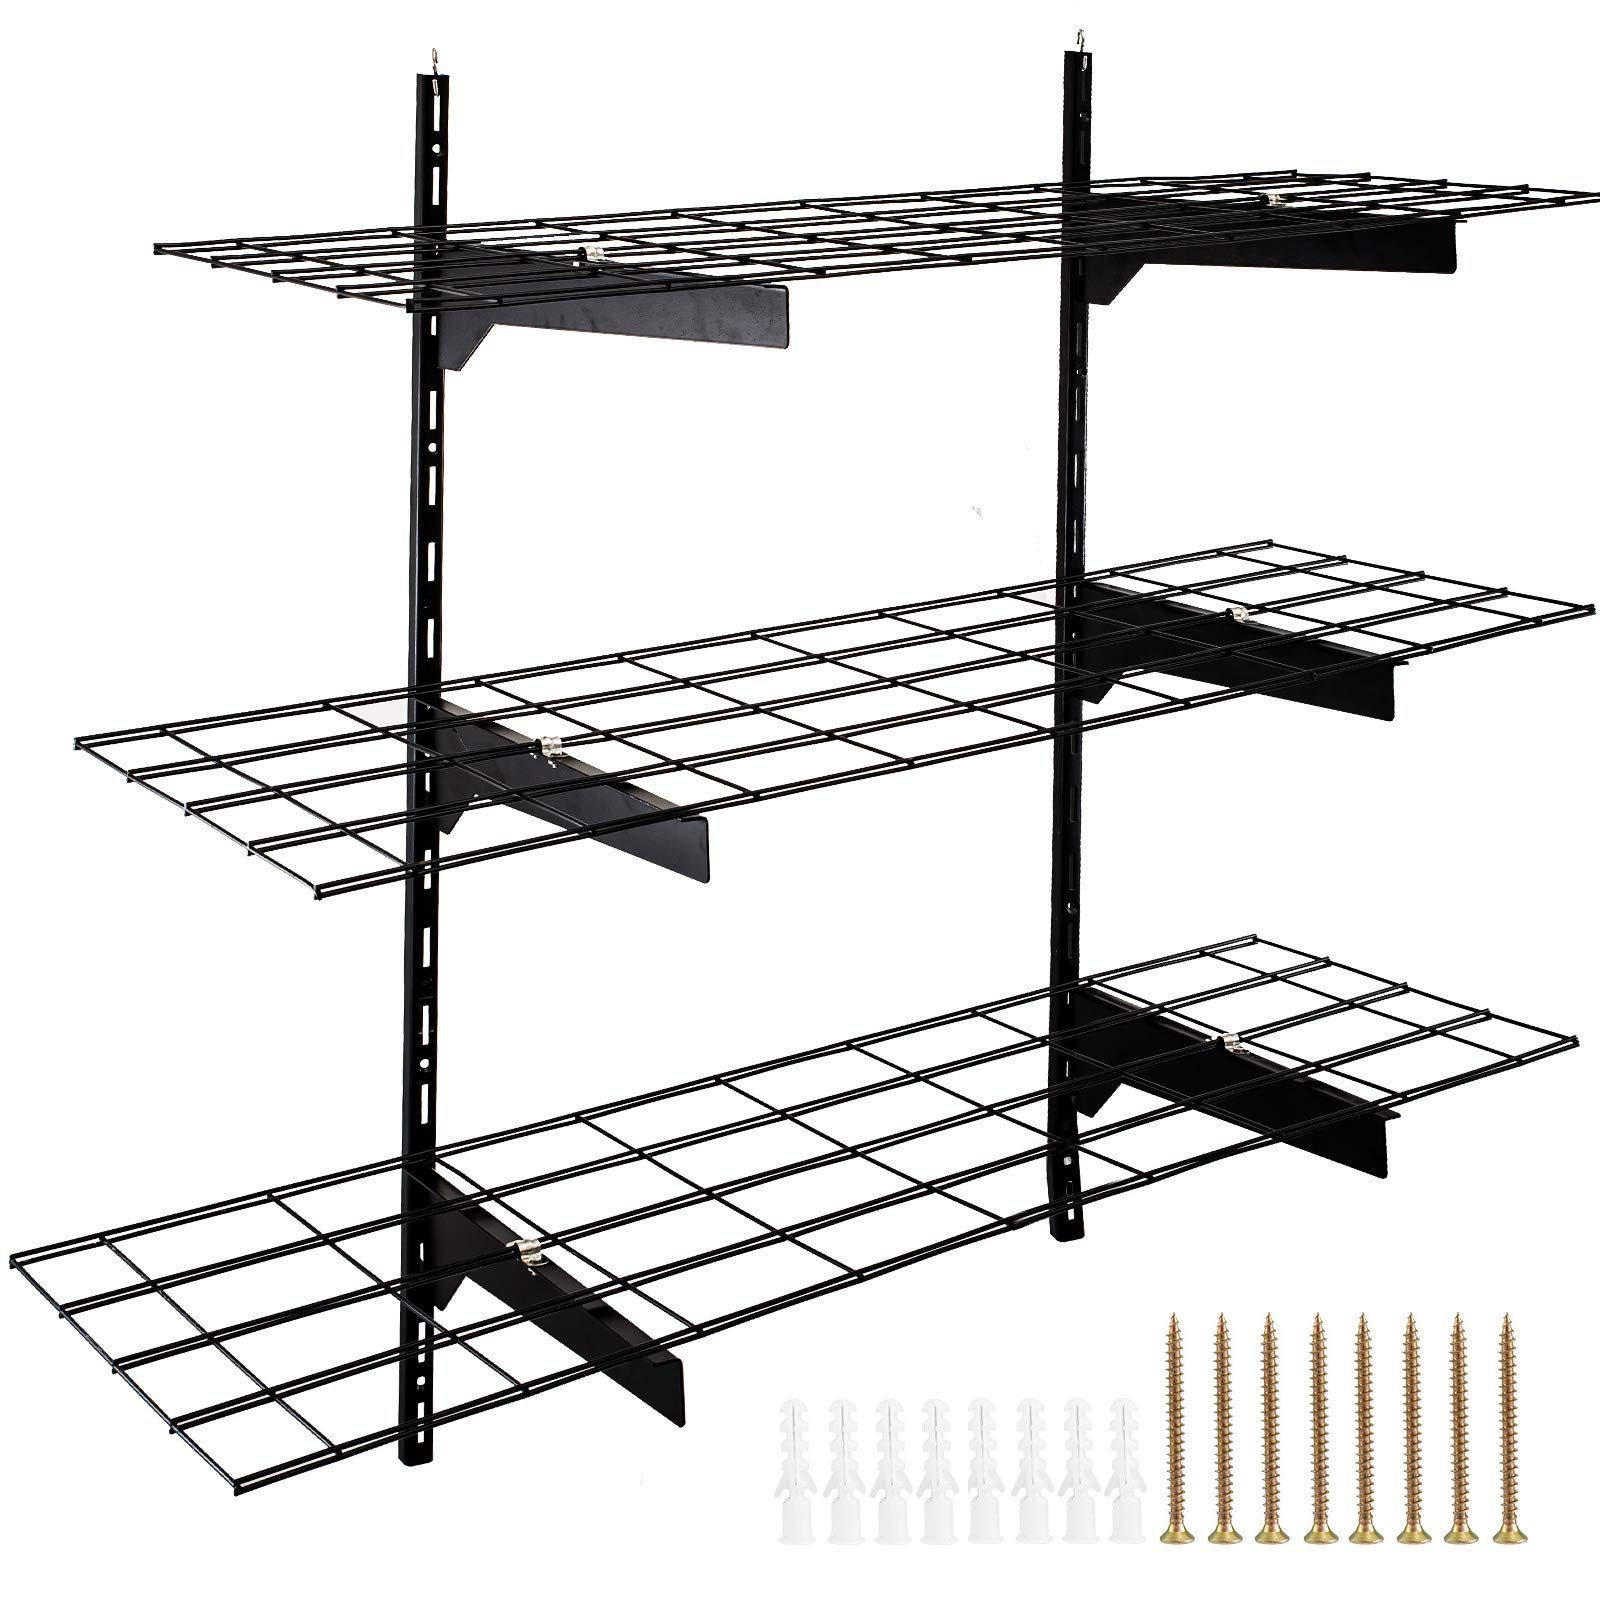 BestEquip 3 PCS 1x3Ft 12 Inch-by-36 Inch Garage Wall Storage Black Garage Shelves Portable Wall Mounted Shelves